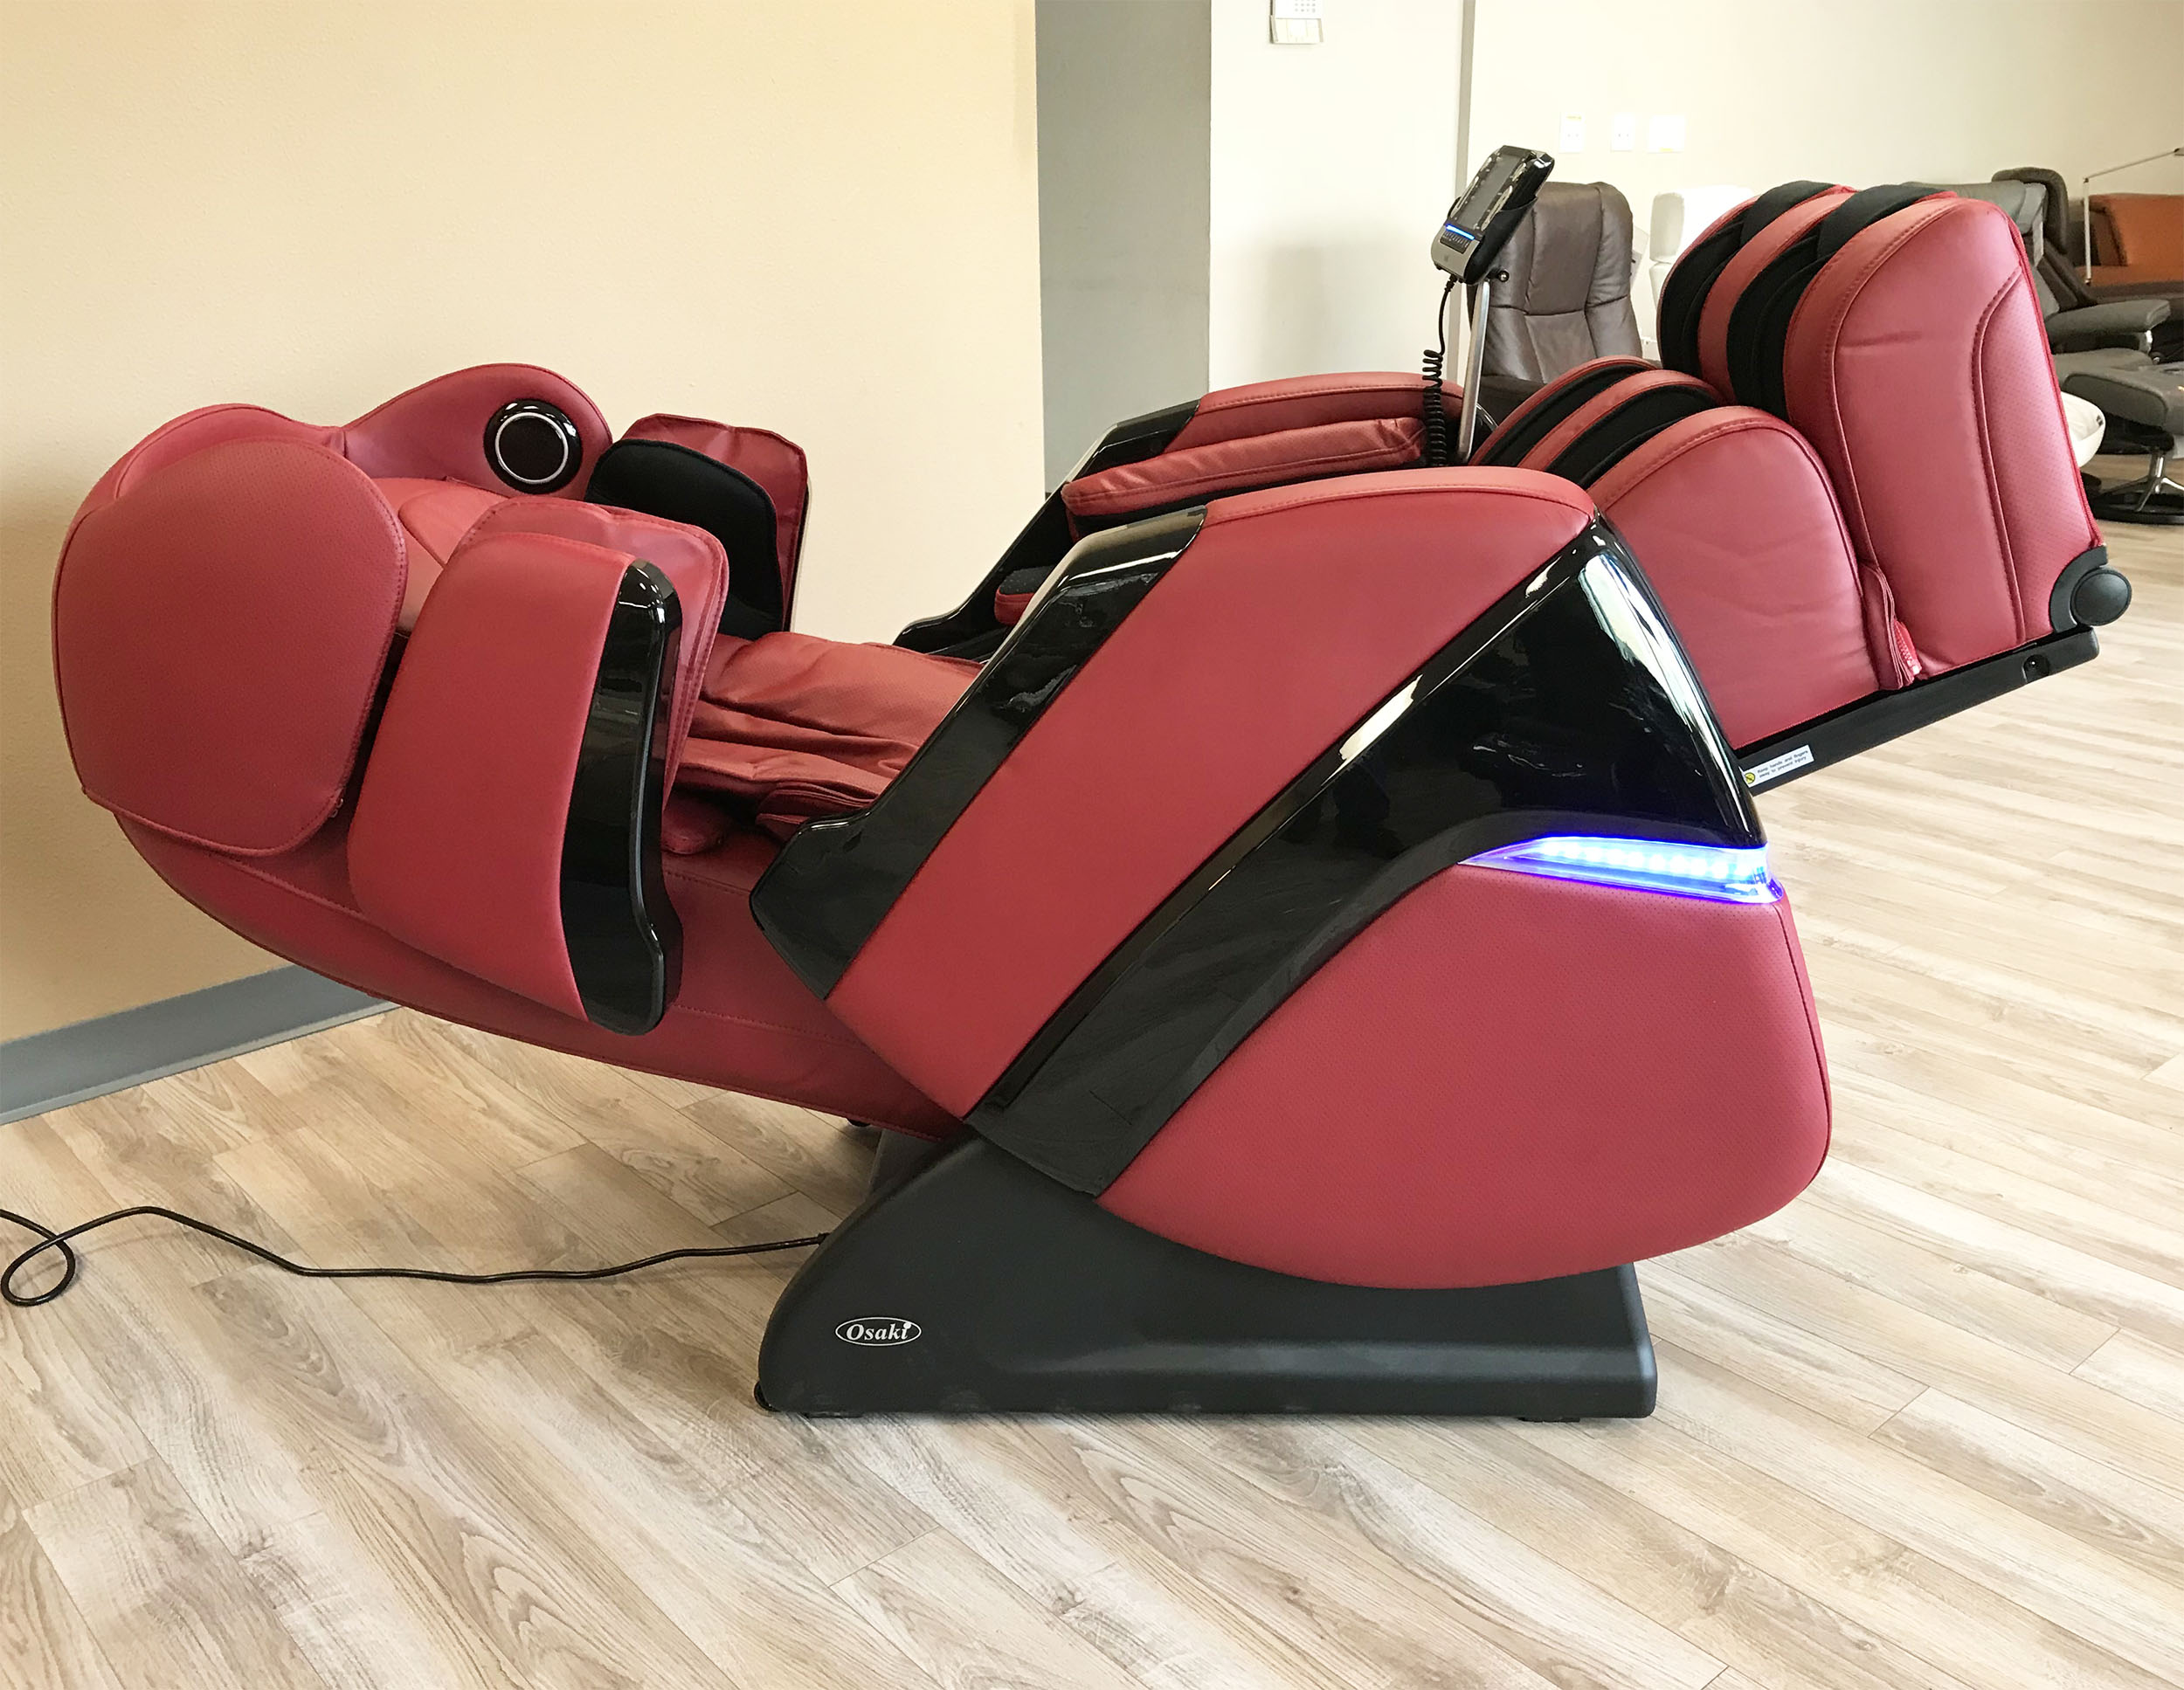 osaki os 3d pro cyber massage chair kids lounge chairs zero gravity recliner and